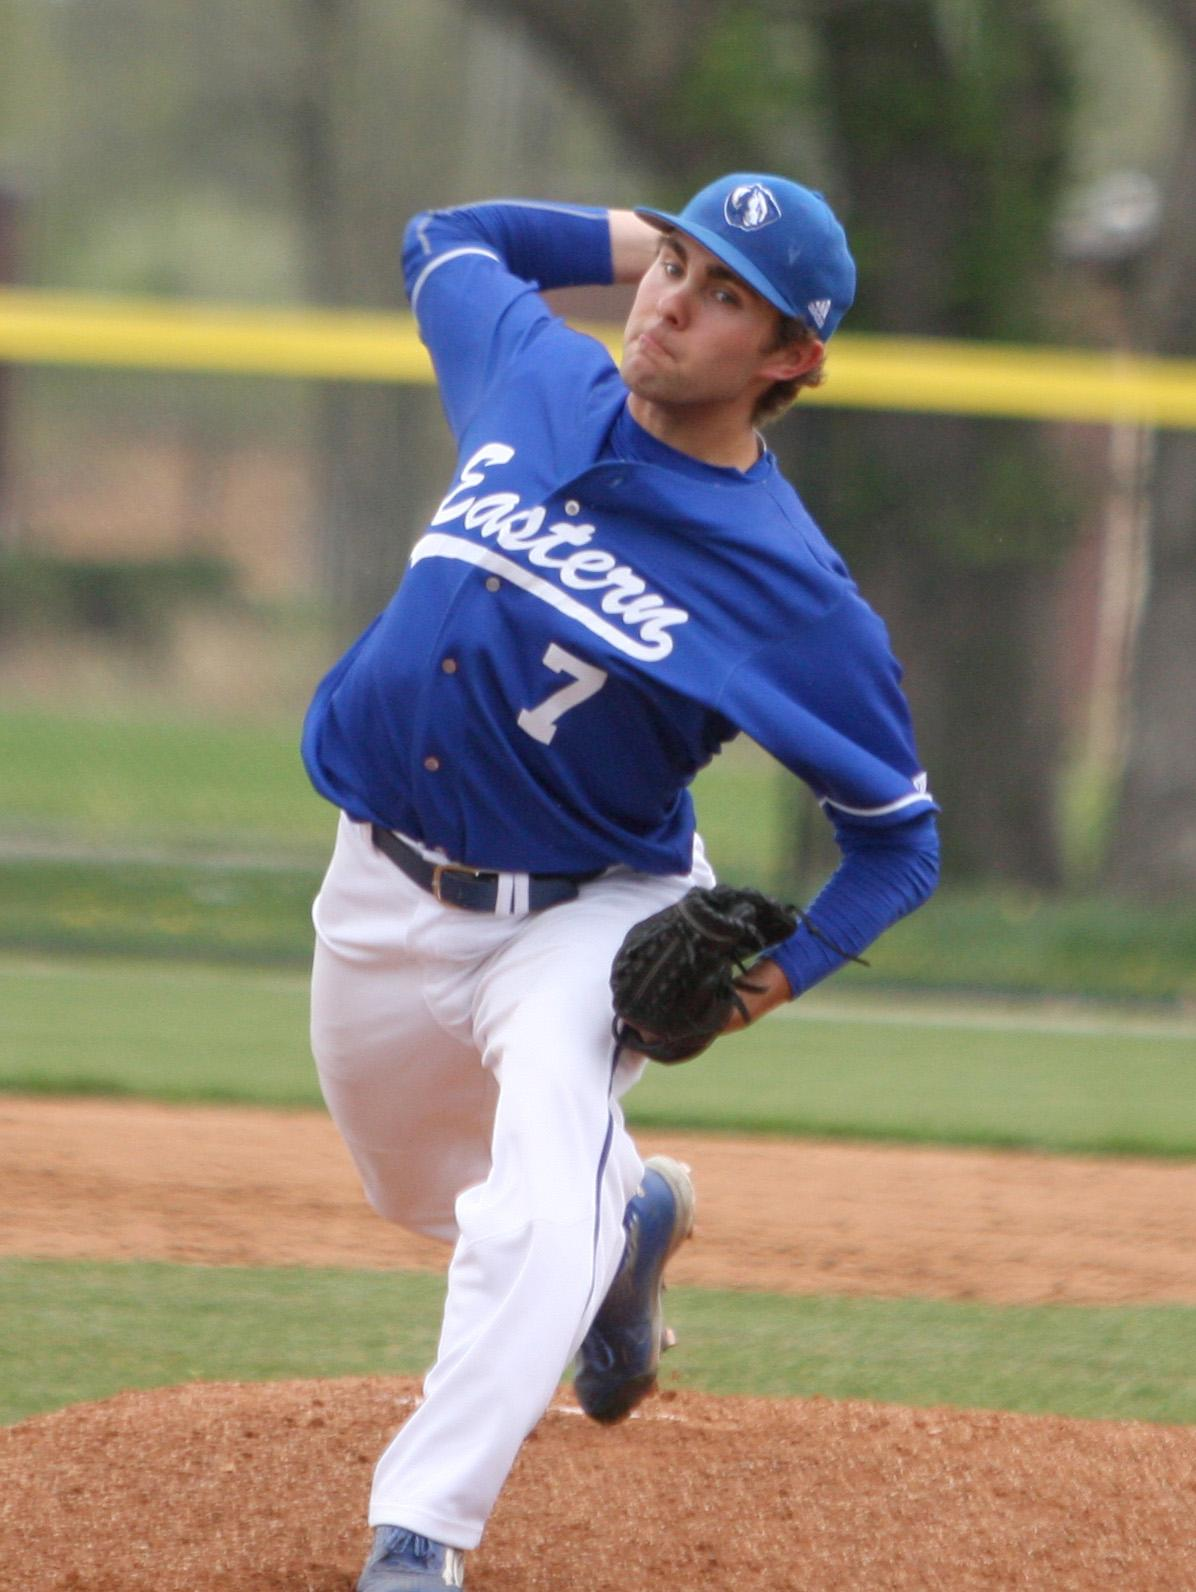 Sophomore Ben Hughes fires a pitch Wednesday afternoon against Illinois College. Hughes pitched four innings and allowed one run in the Panthers' 7-6 win.